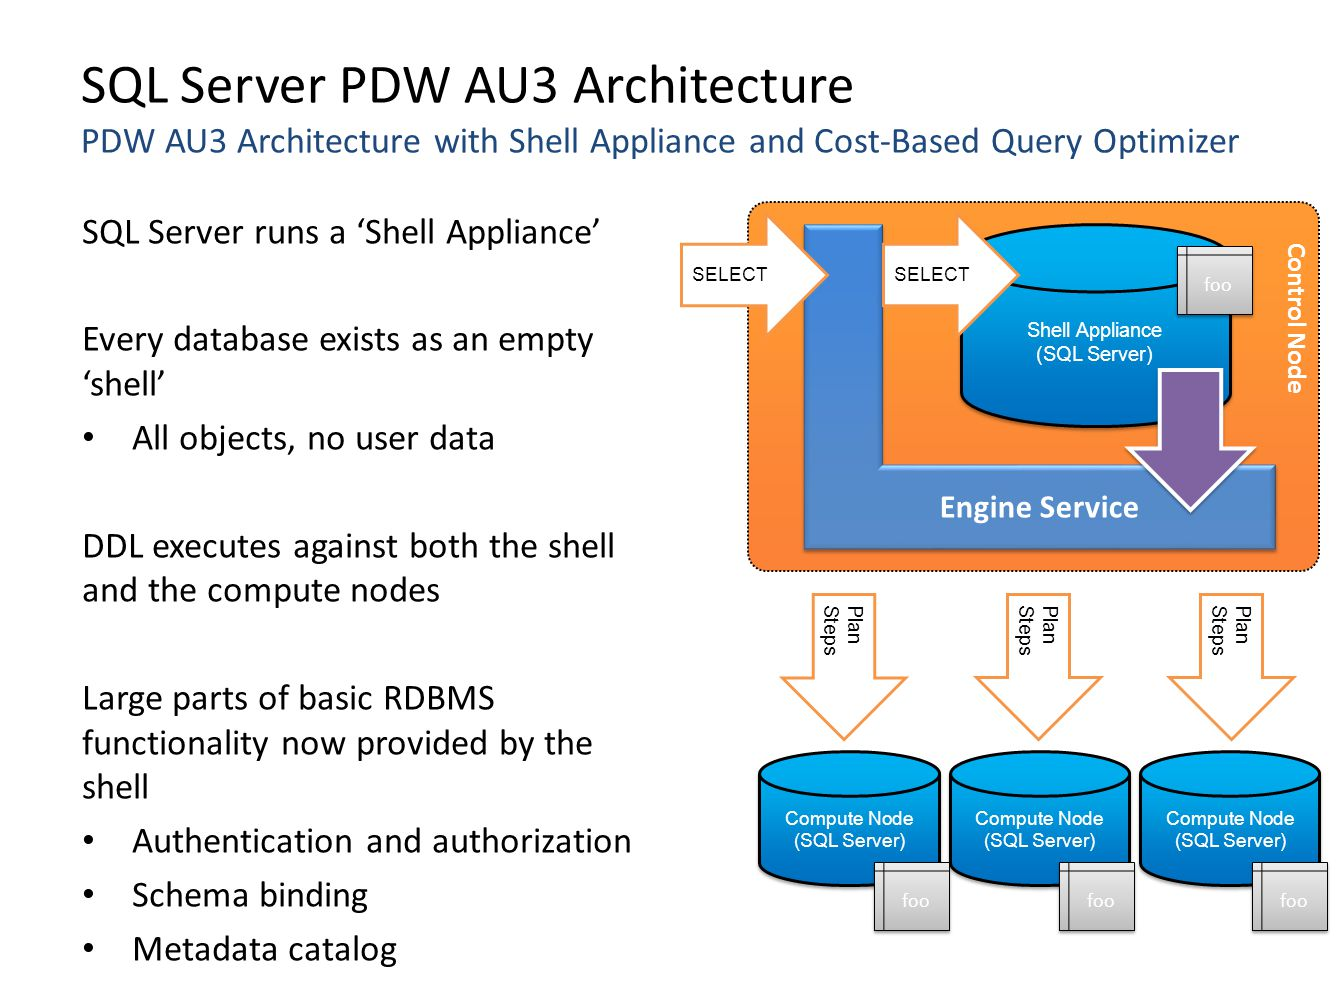 SQL Server PDW AU3 Architecture PDW AU3 Architecture with Shell Appliance and Cost-Based Query Optimizer SQL Server runs a 'Shell Appliance' Every dat